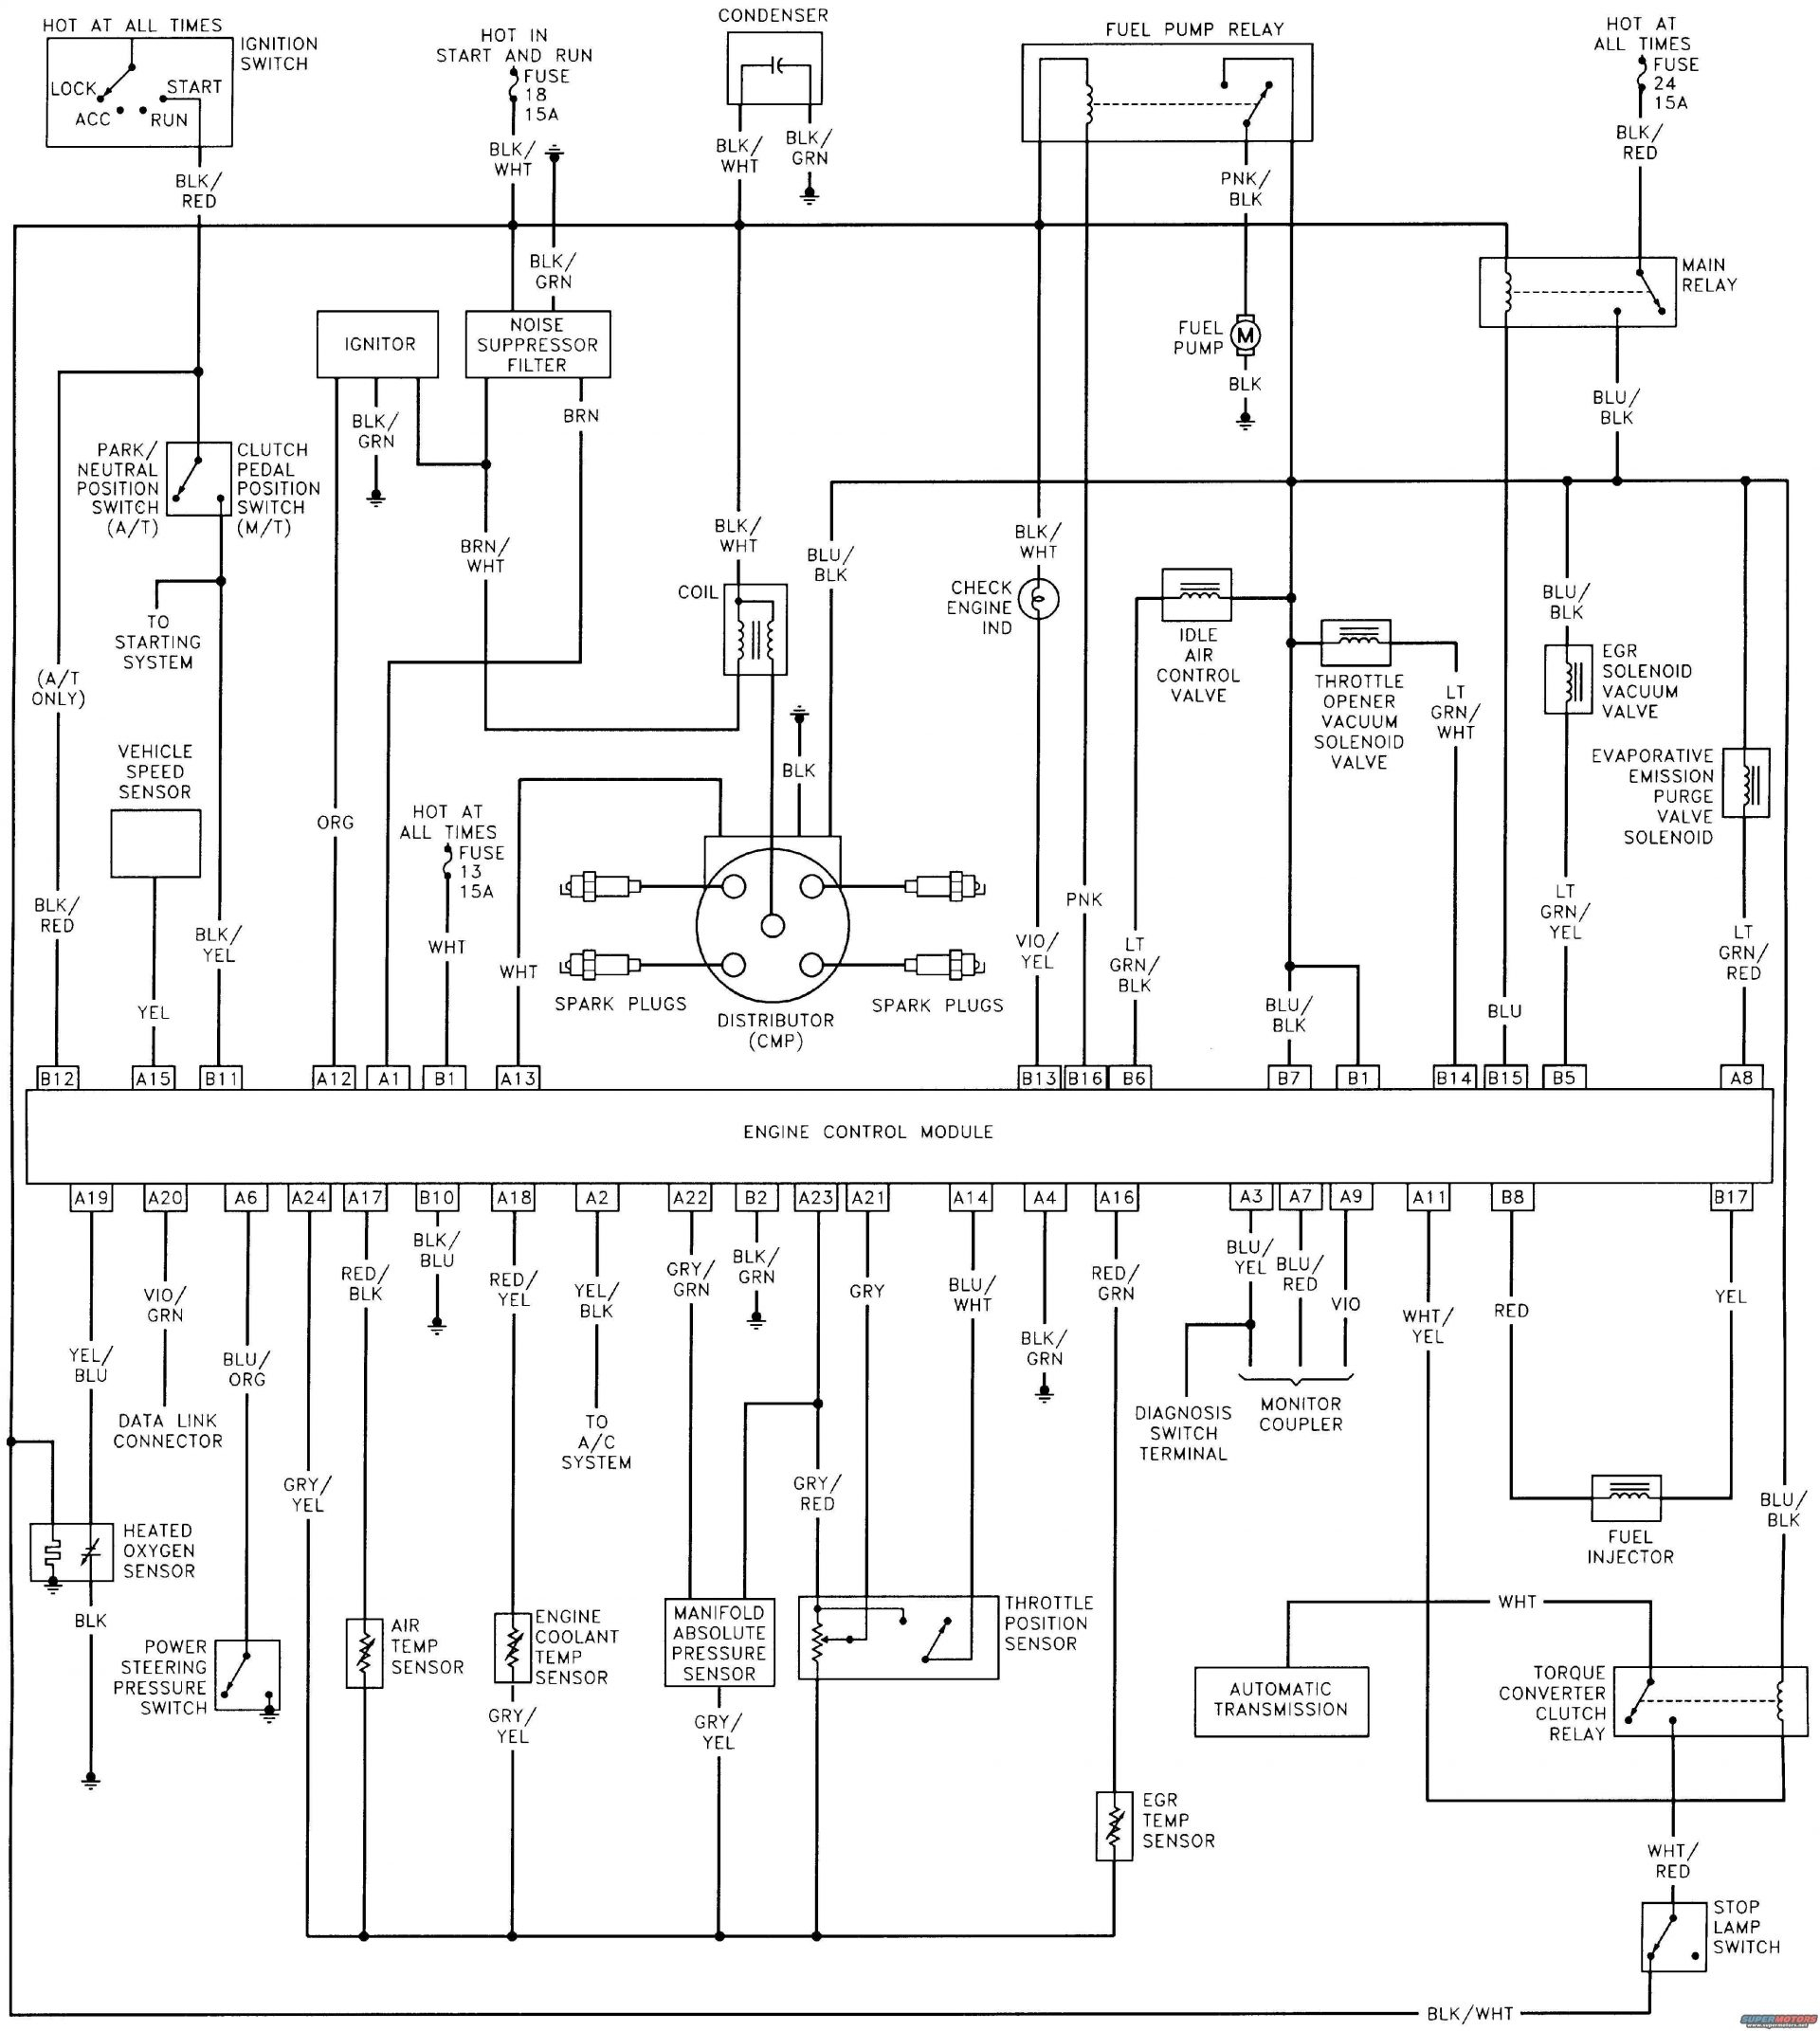 hight resolution of wiring clark diagram cgp55 wiring diagram article review clark c25l wiring diagram